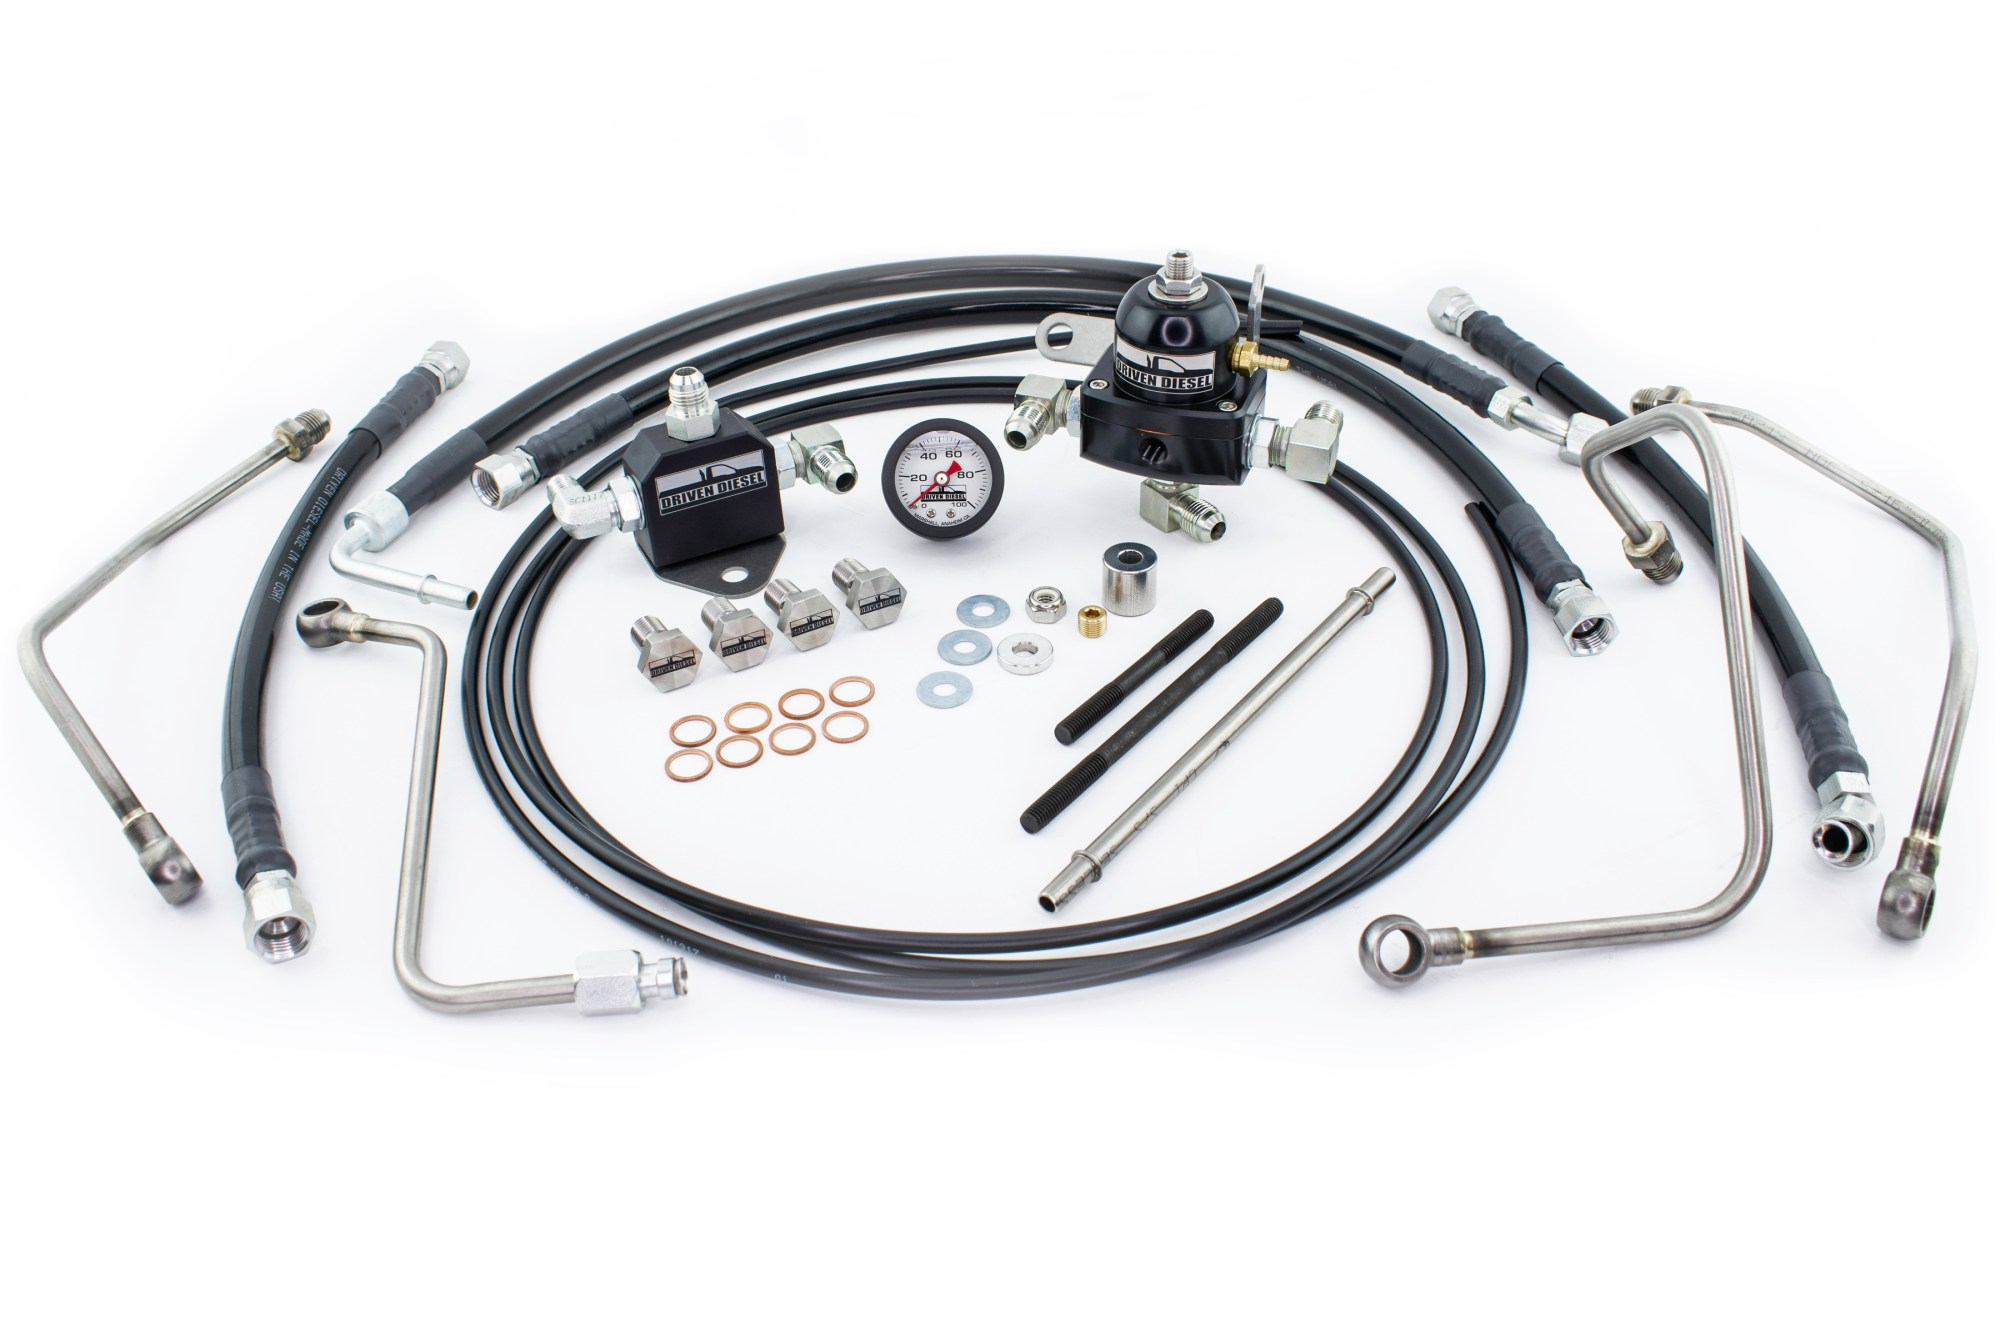 hight resolution of last but not least we have the regulated return fuel system kits for 7 3 liter and 6 0 liter power strokes the need for the product arises from the